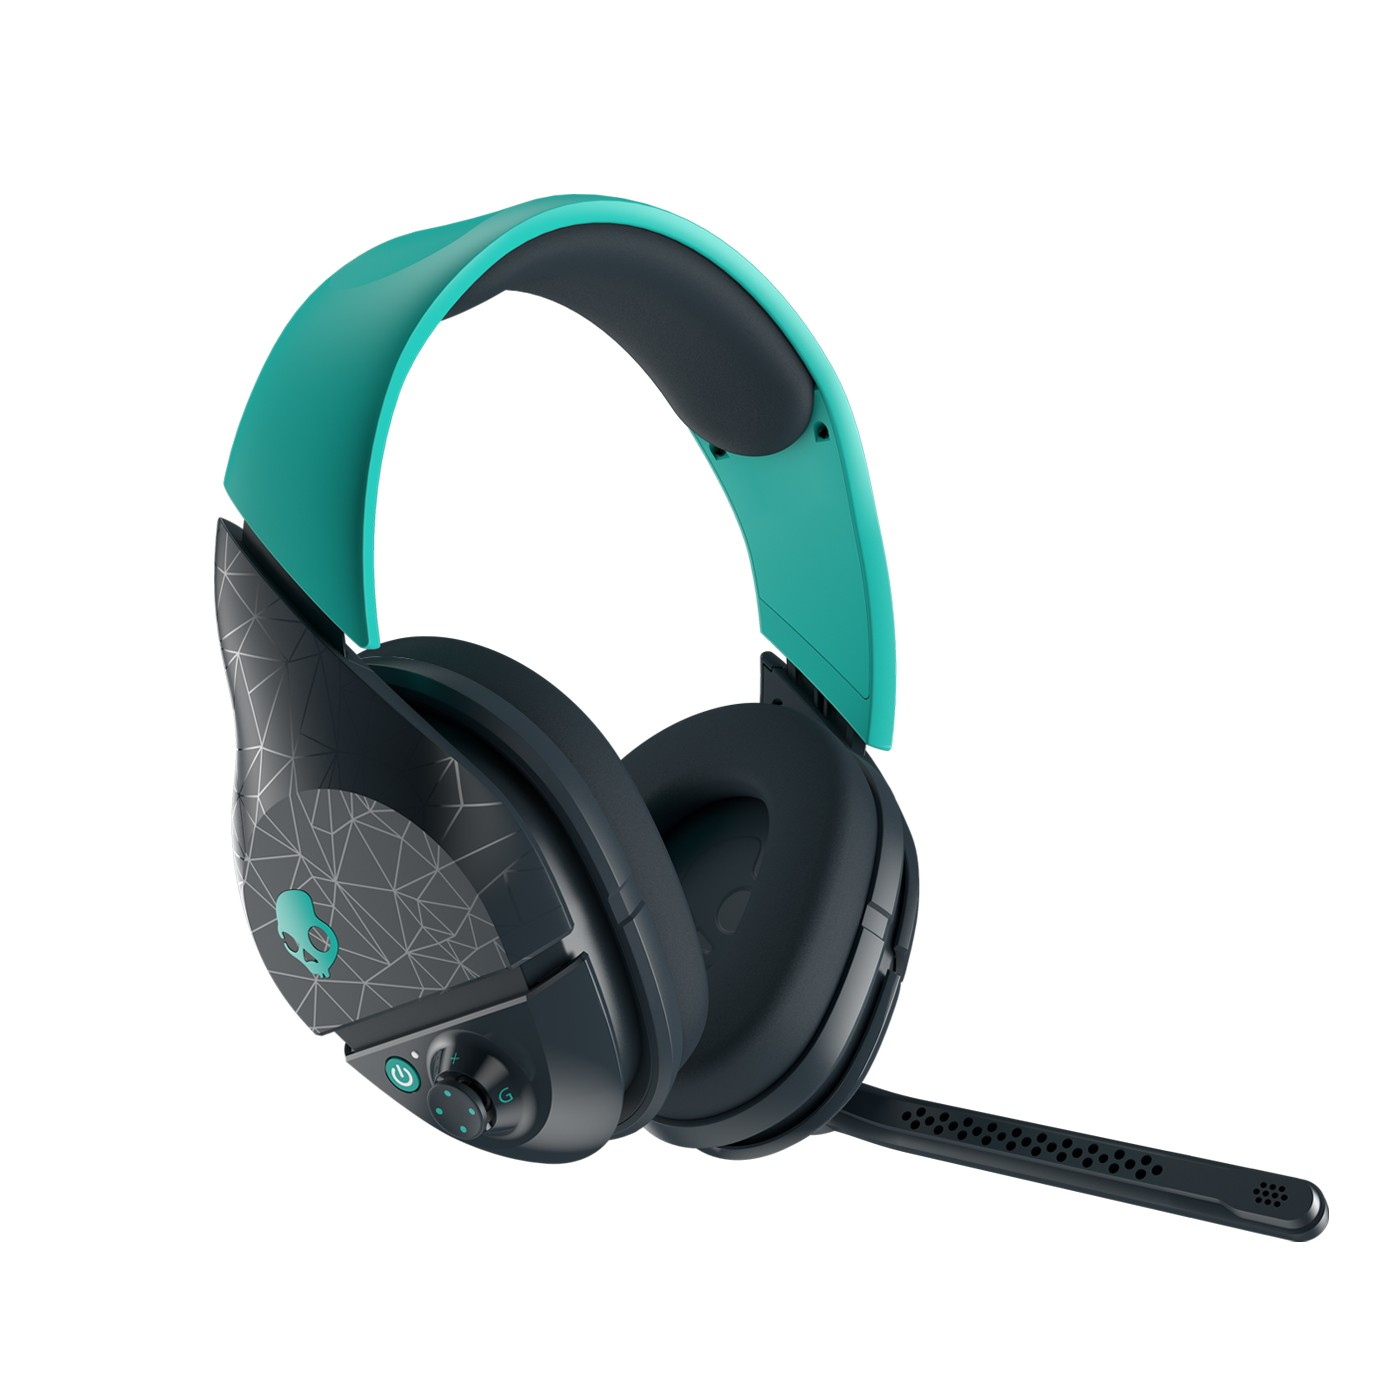 Headphones wireless rf - skullcandy wireless gaming headphones